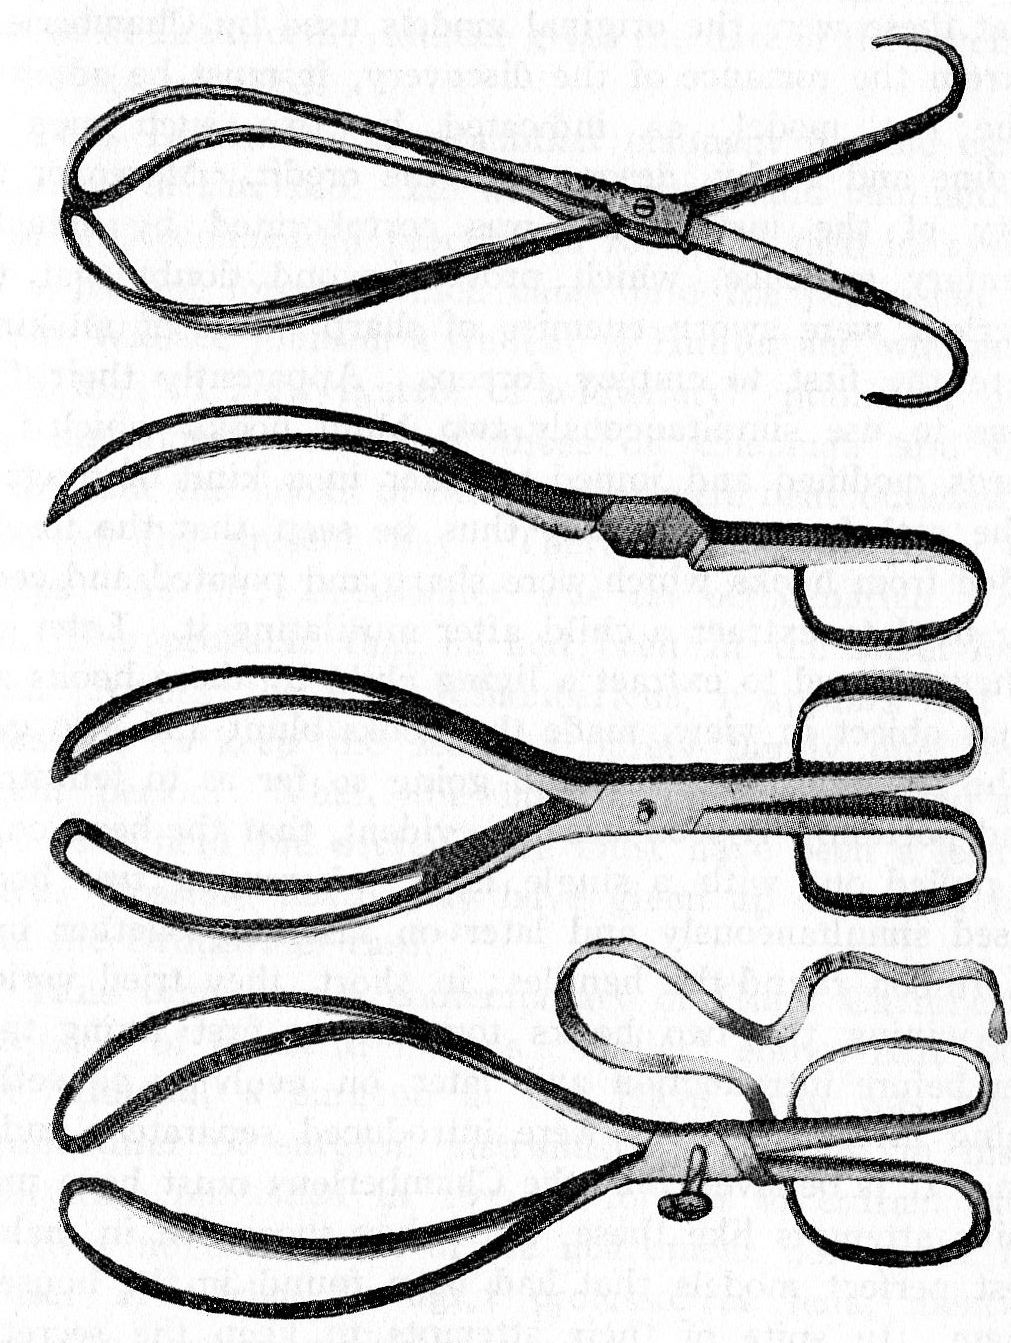 Chamberlen forceps (Malden found 1813) in K. DAS after Kilian.jpg Found on Wikimedia Commons, https://commons.wikimedia.org/wiki/File:Chamberlen_forceps_(Malden_found_1813)_in_K._DAS_after_Kilian.jpg. Presumably public domain.